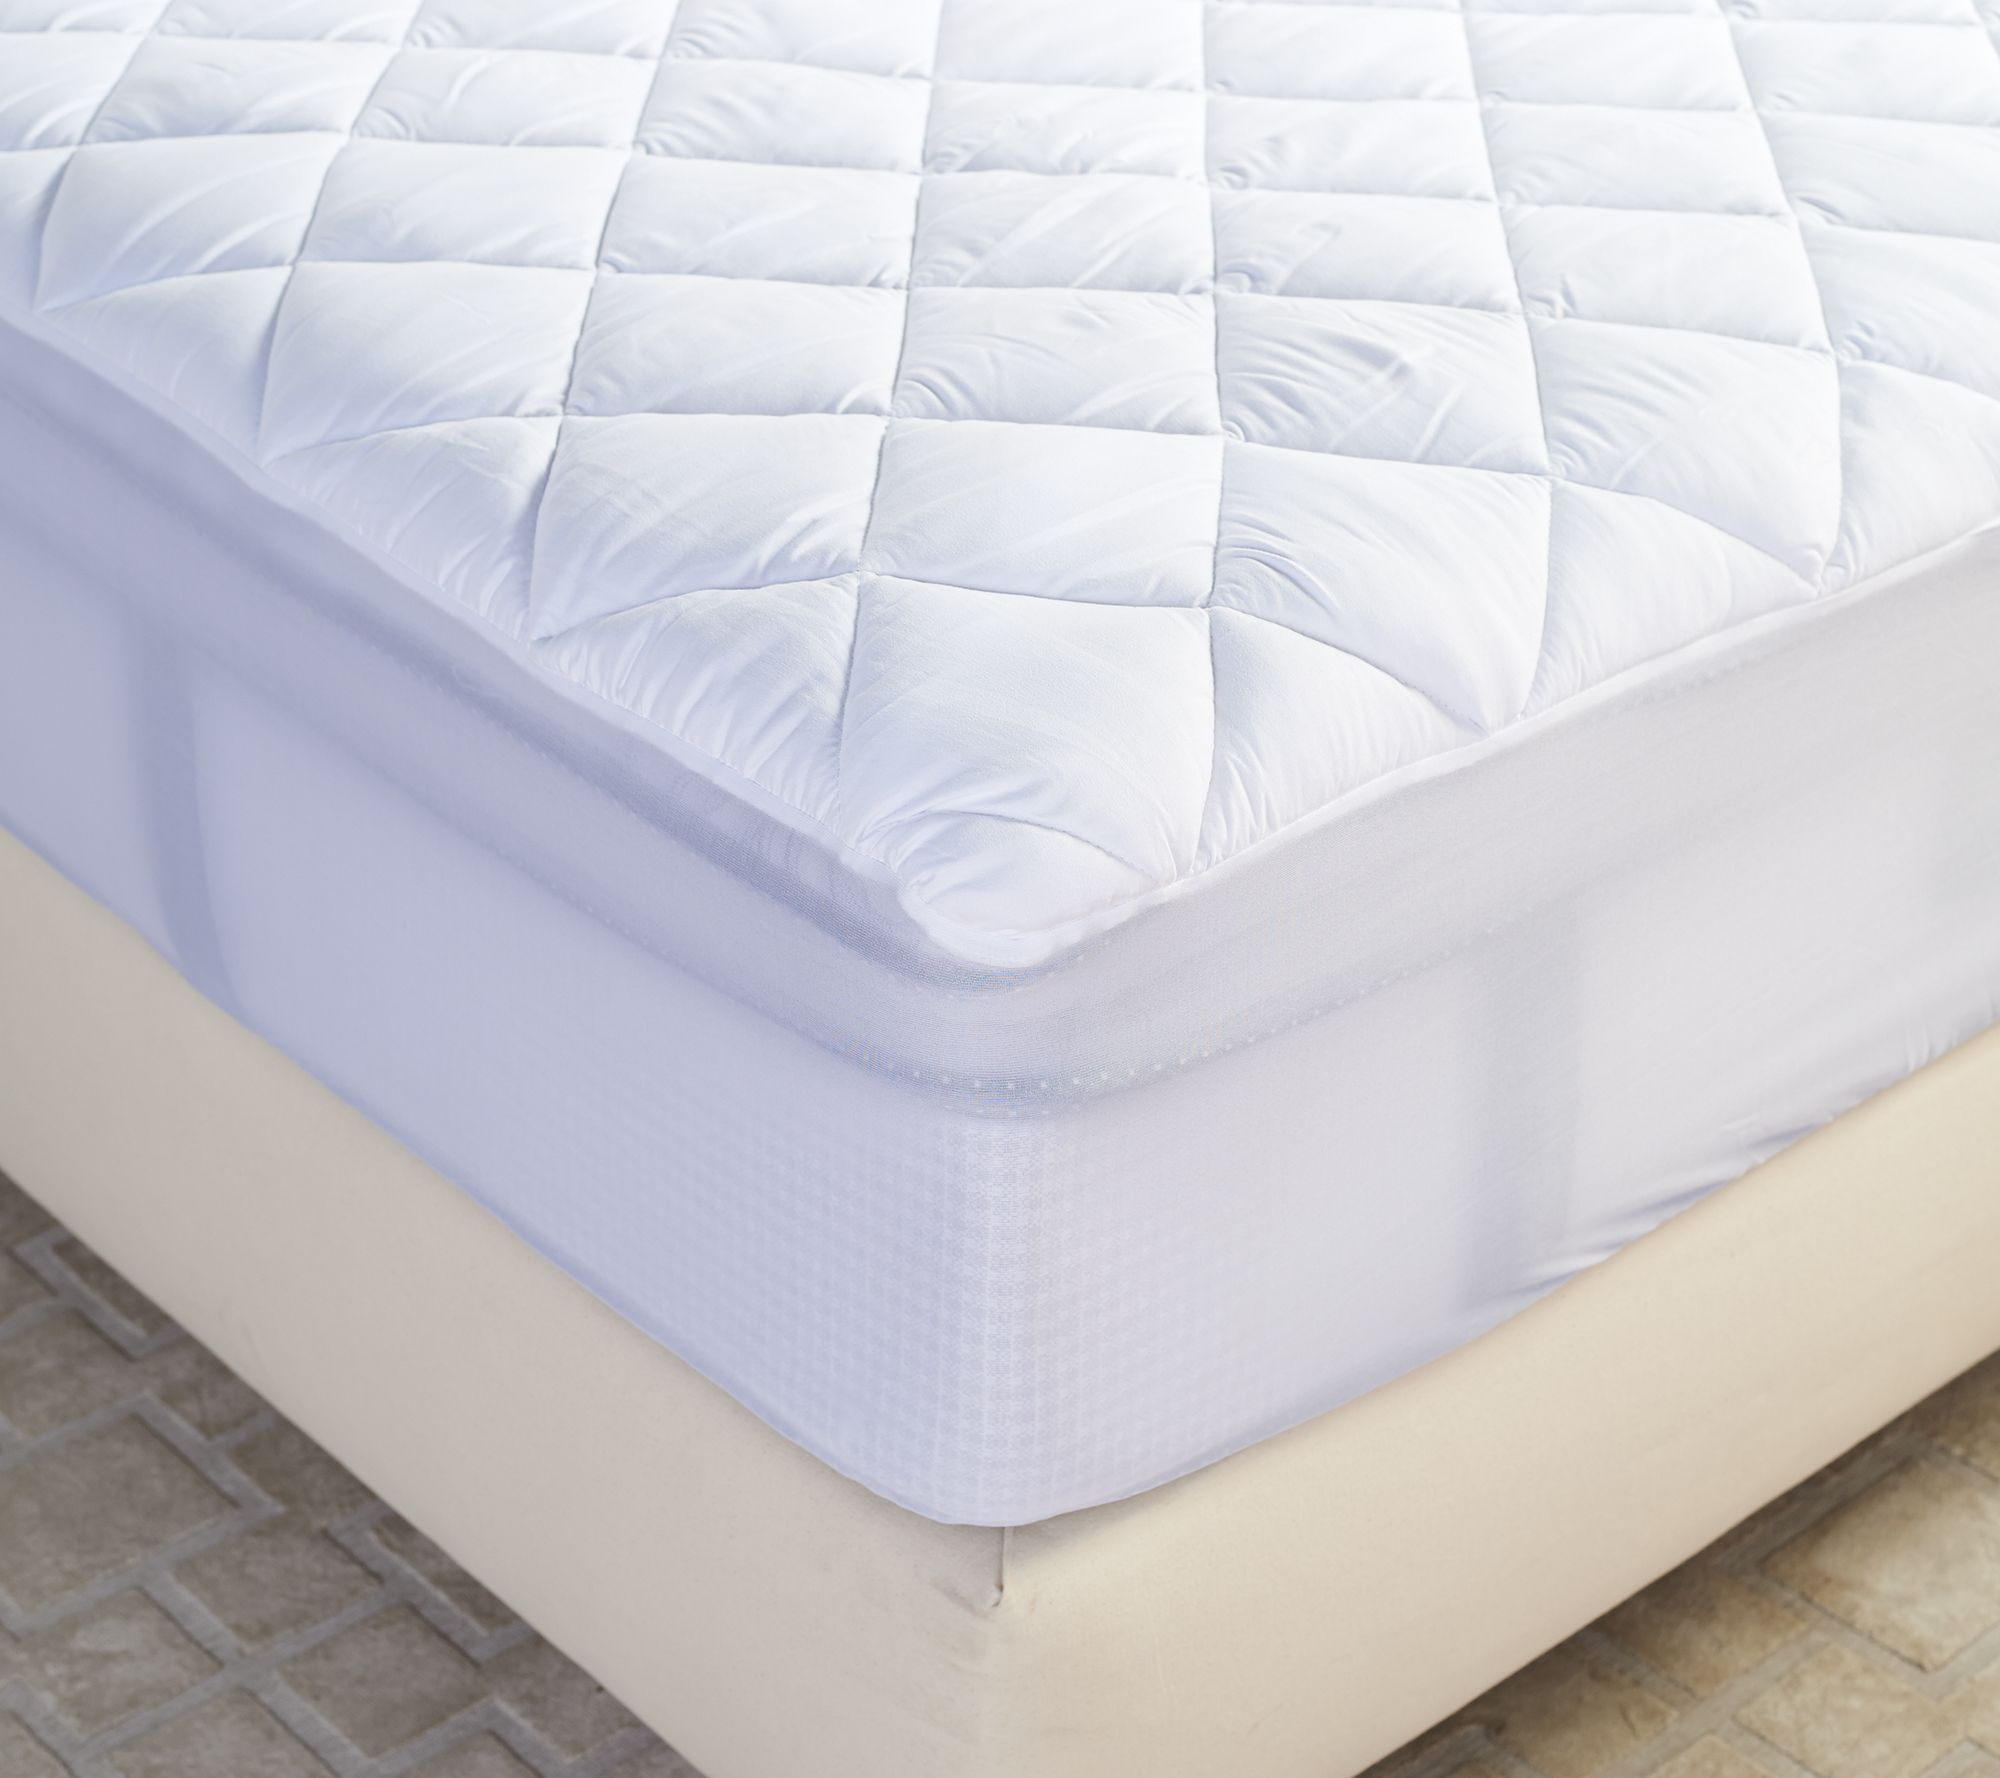 serta perfect sleeper full mattress pad with nanotex technology page 1 u2014 qvccom - Serta Mattress Topper